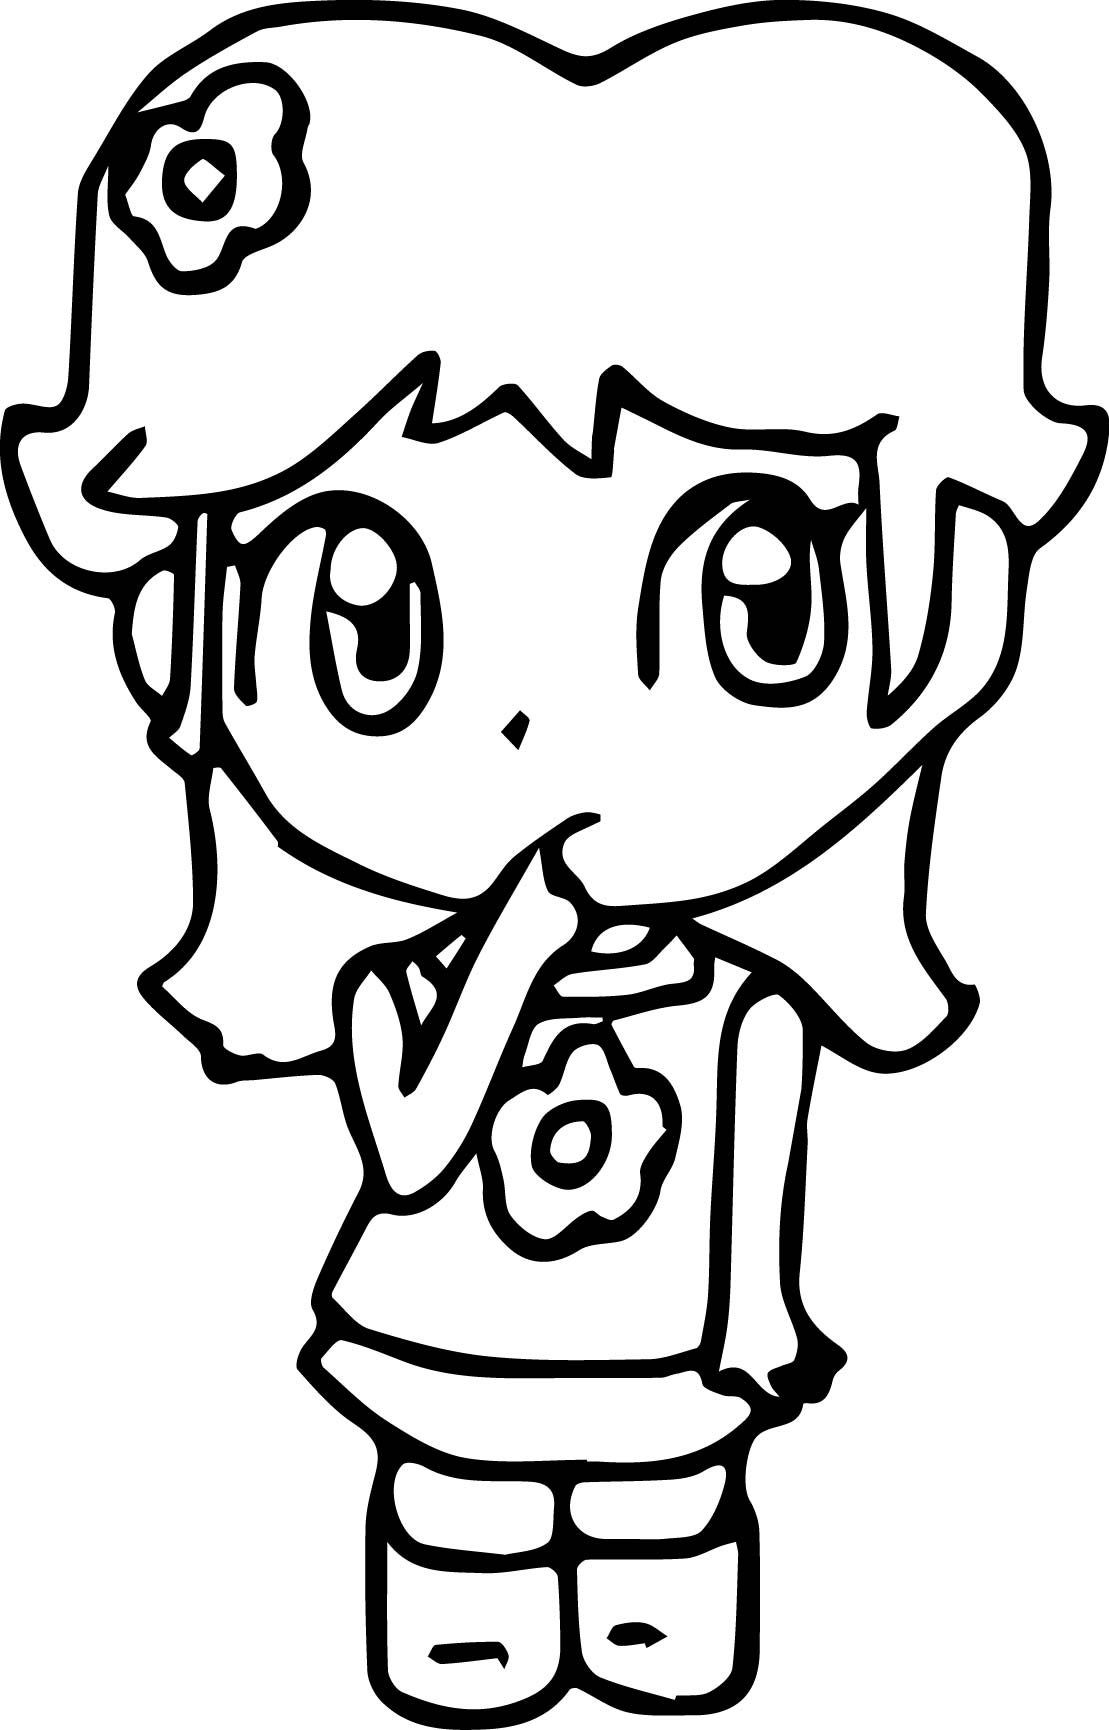 thinking baby daisy coloring page wecoloringpage